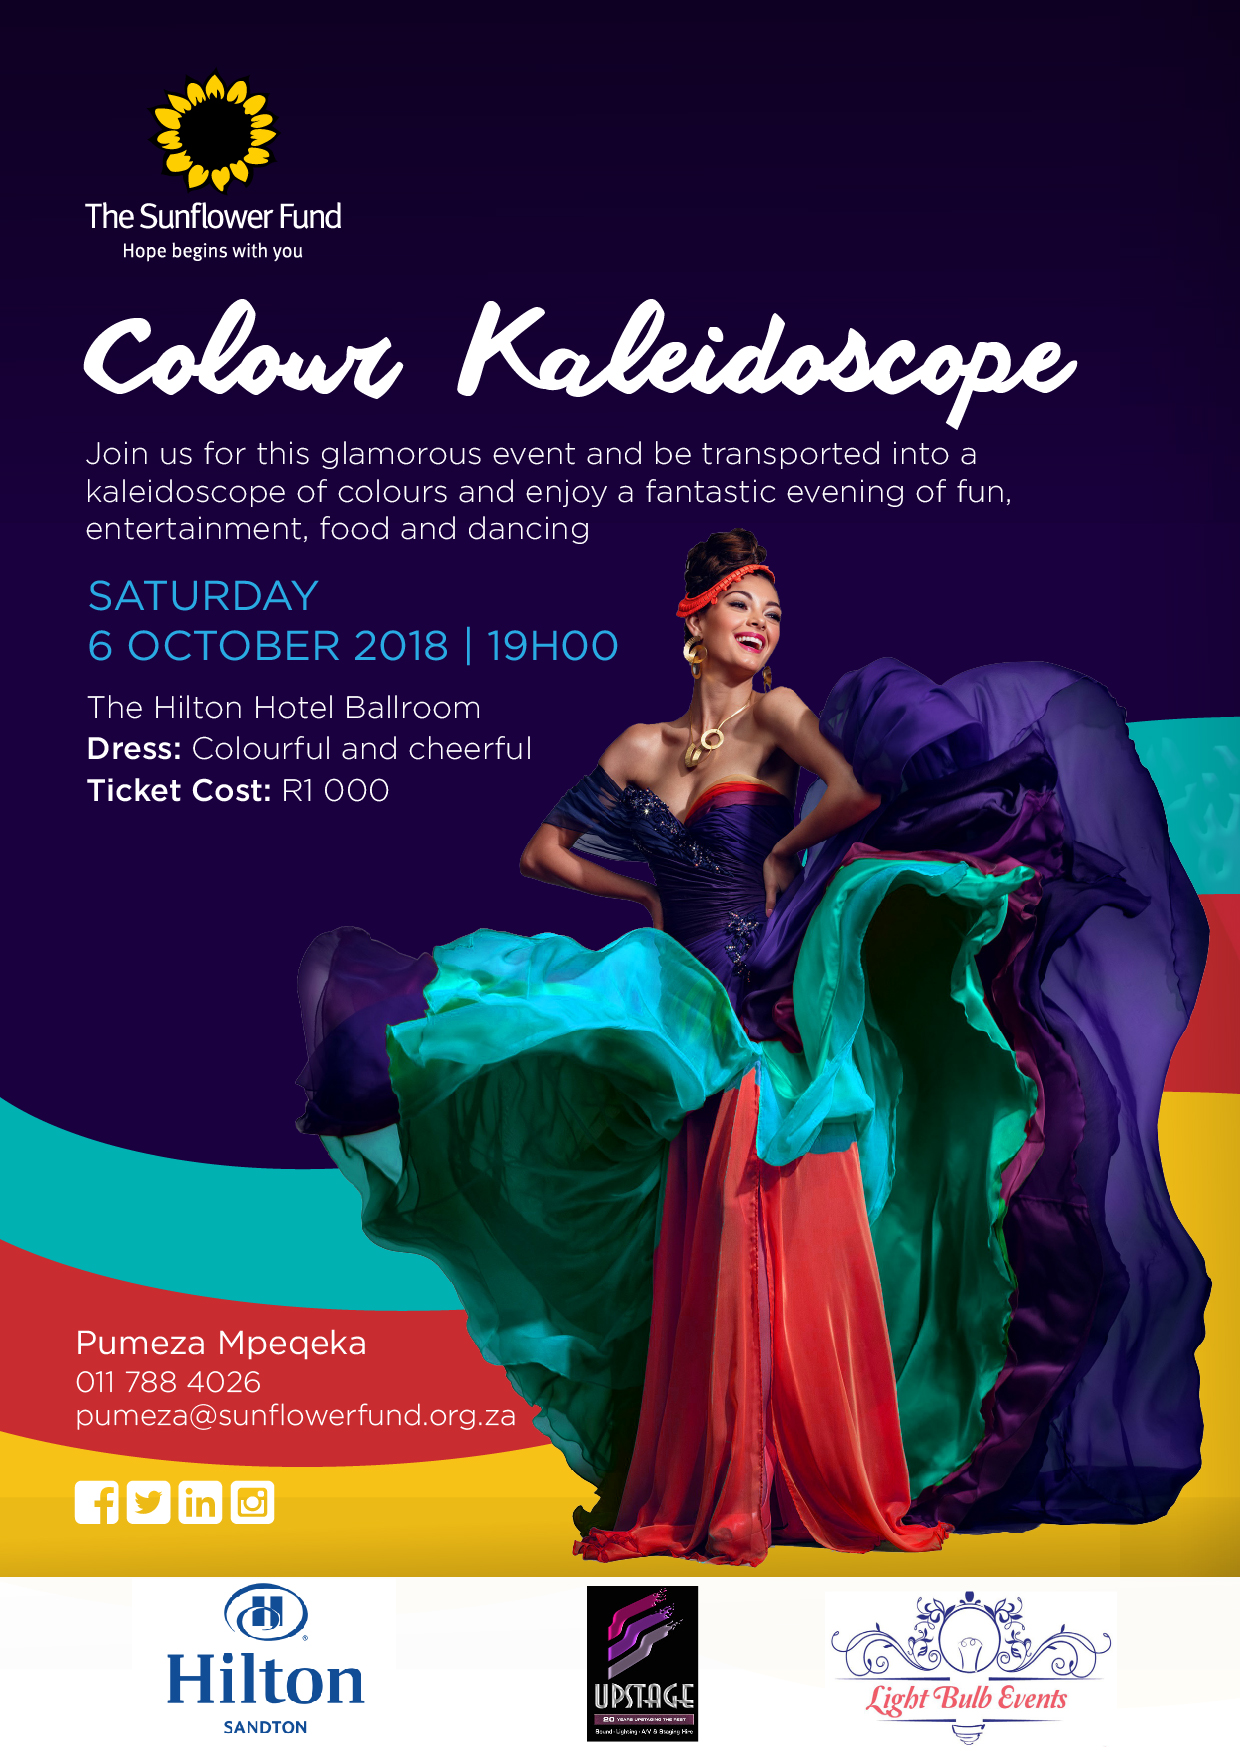 colour-kaleidoscope_-invitation-01